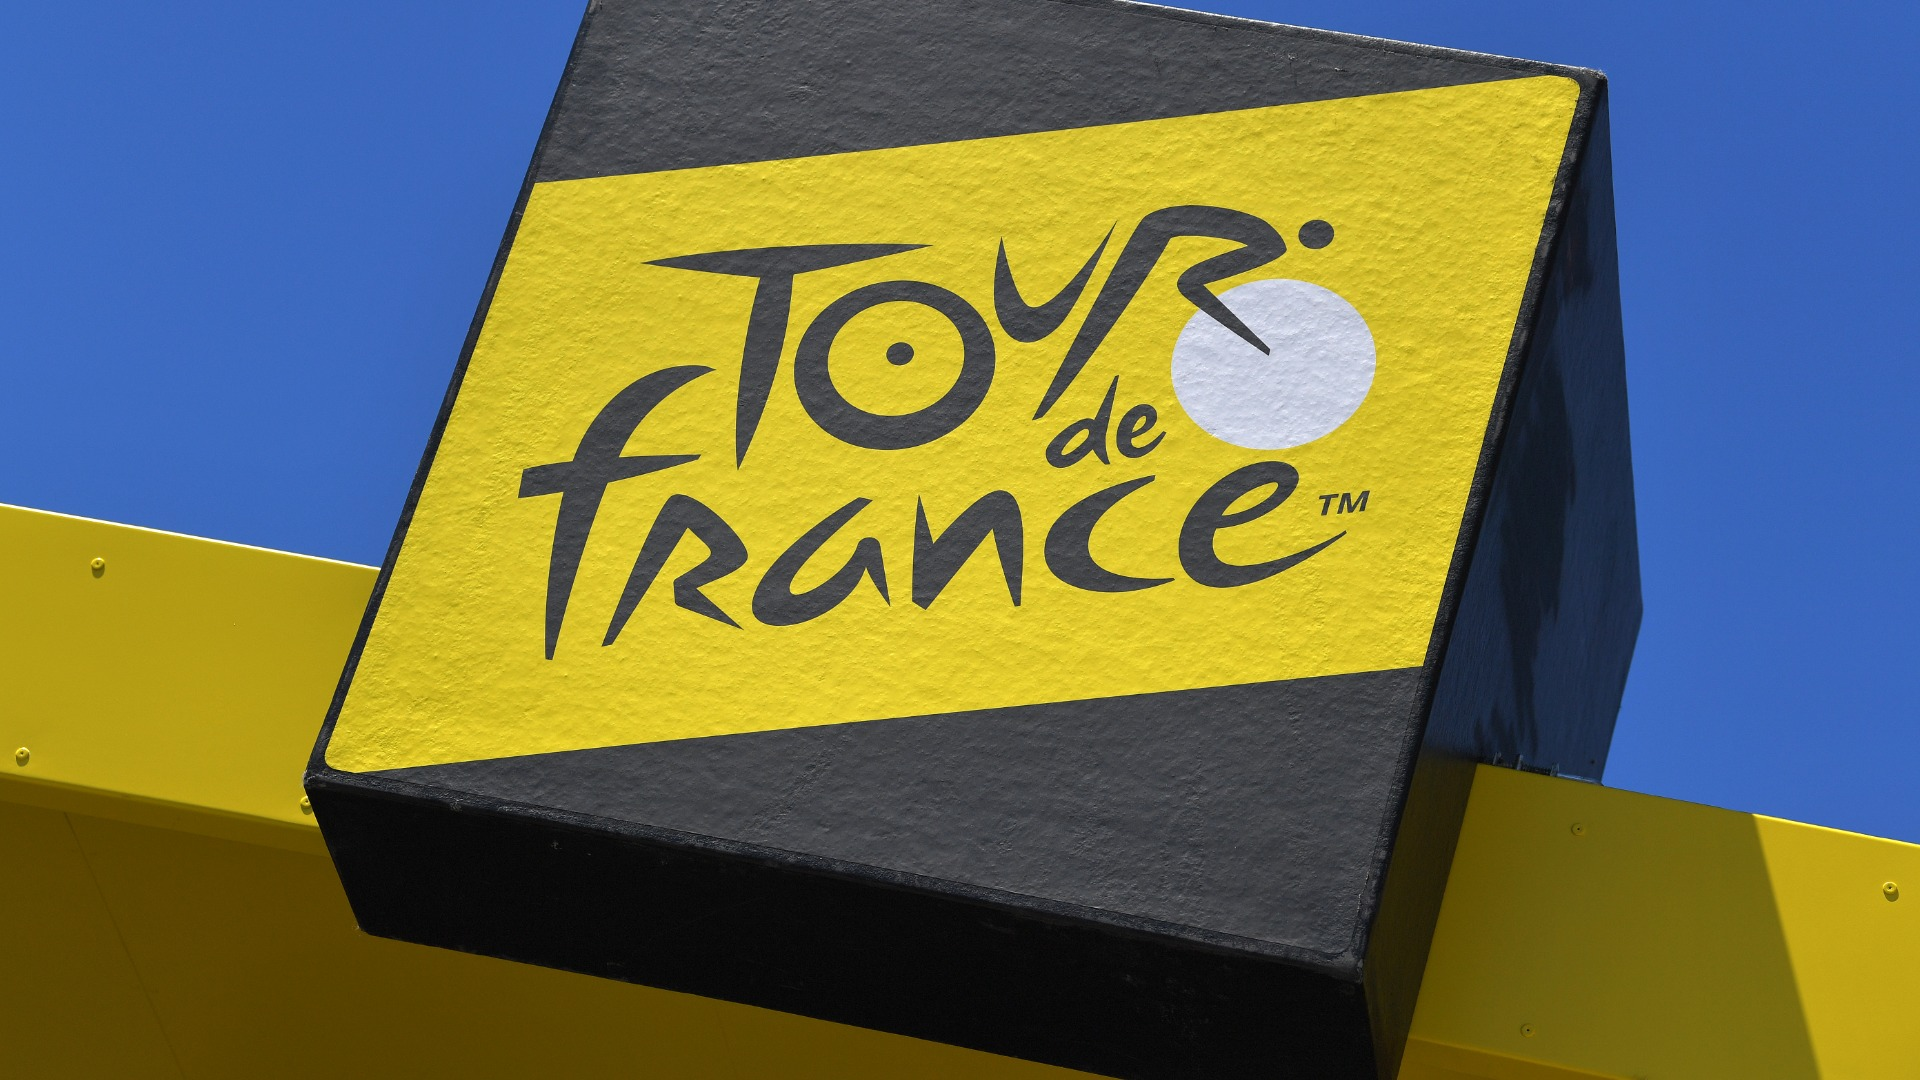 The Tour de France will start in Spain in two years' time, with Bilbao selected for the Grand Depart.